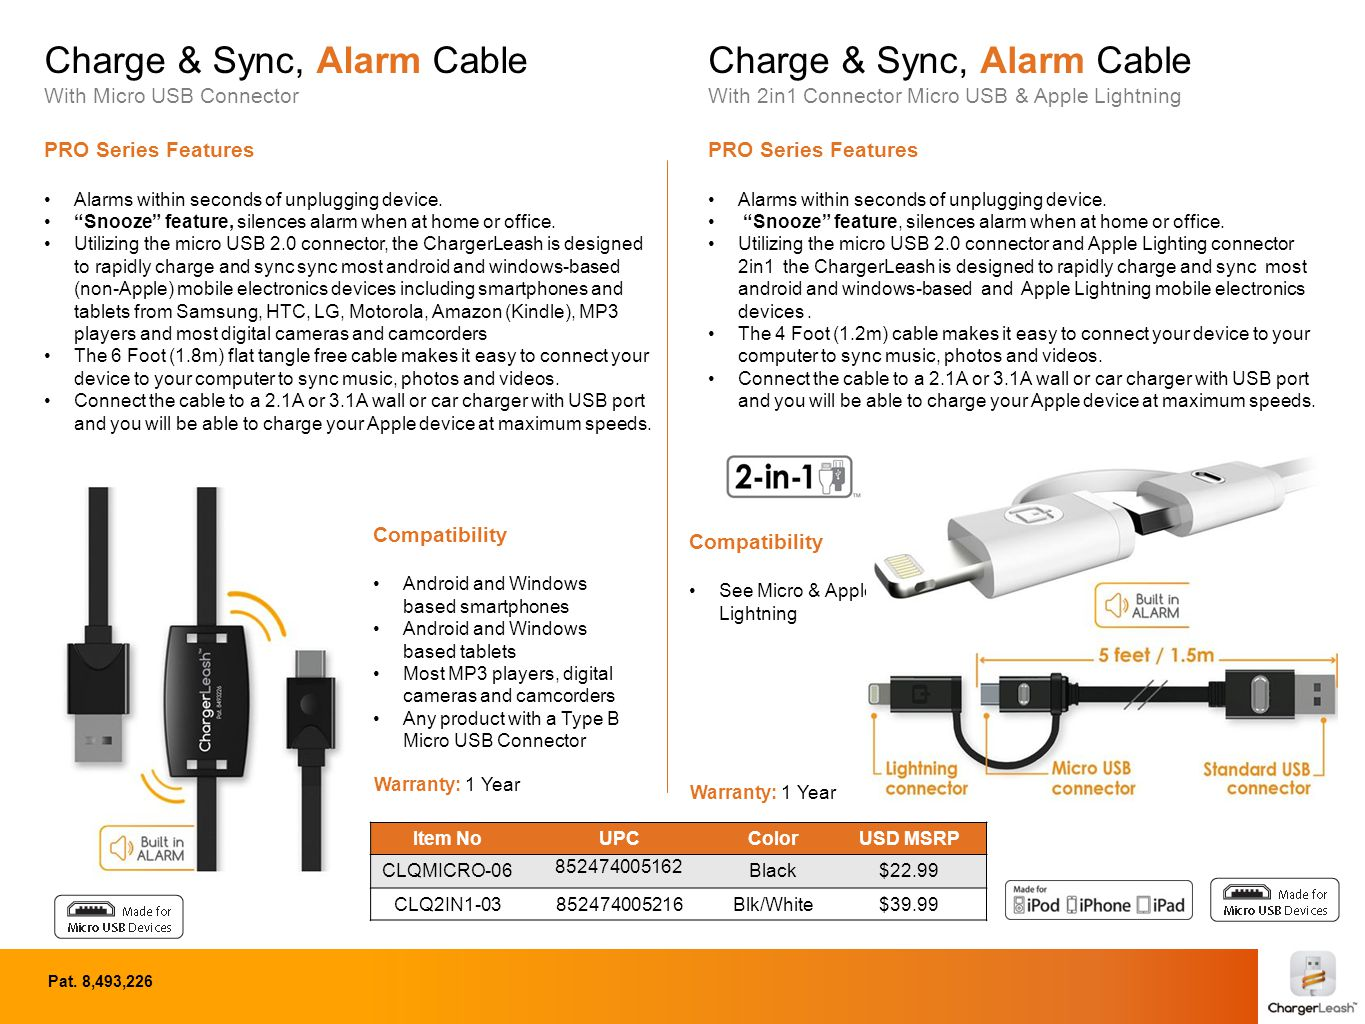 Retail Packaging Charge & Sync Alarm Cable Packaging Clam shell design tamper proof plastic with hanger (see below).